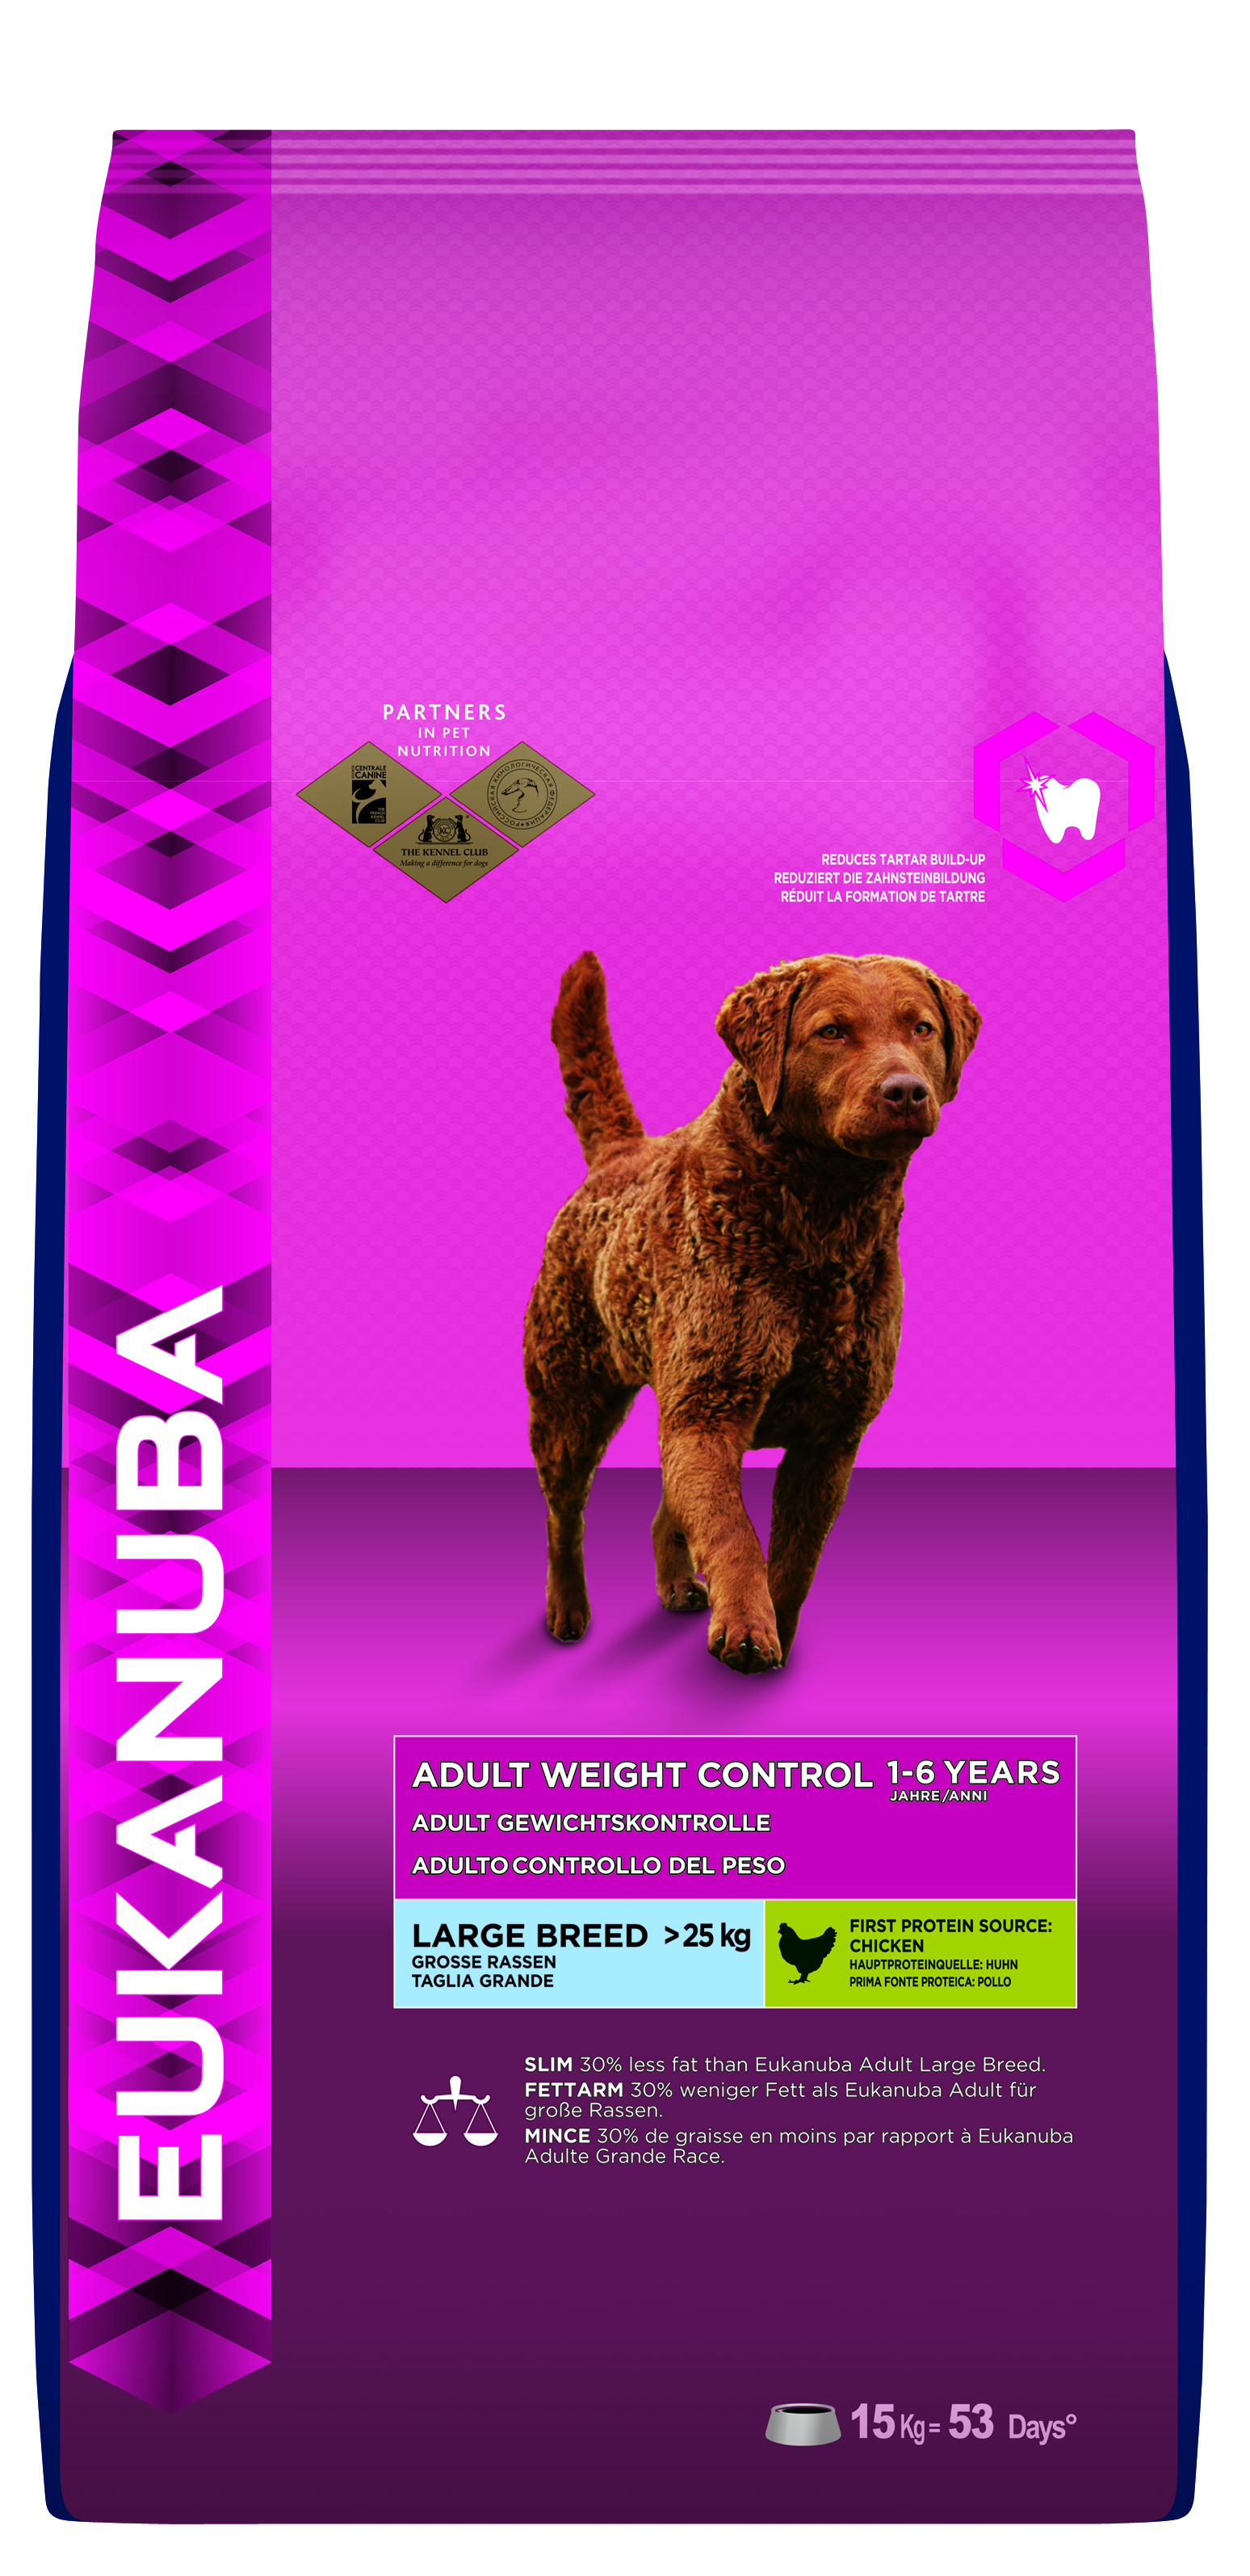 Pets Love Zone Eukanuba Adult Weight Control Large Breed